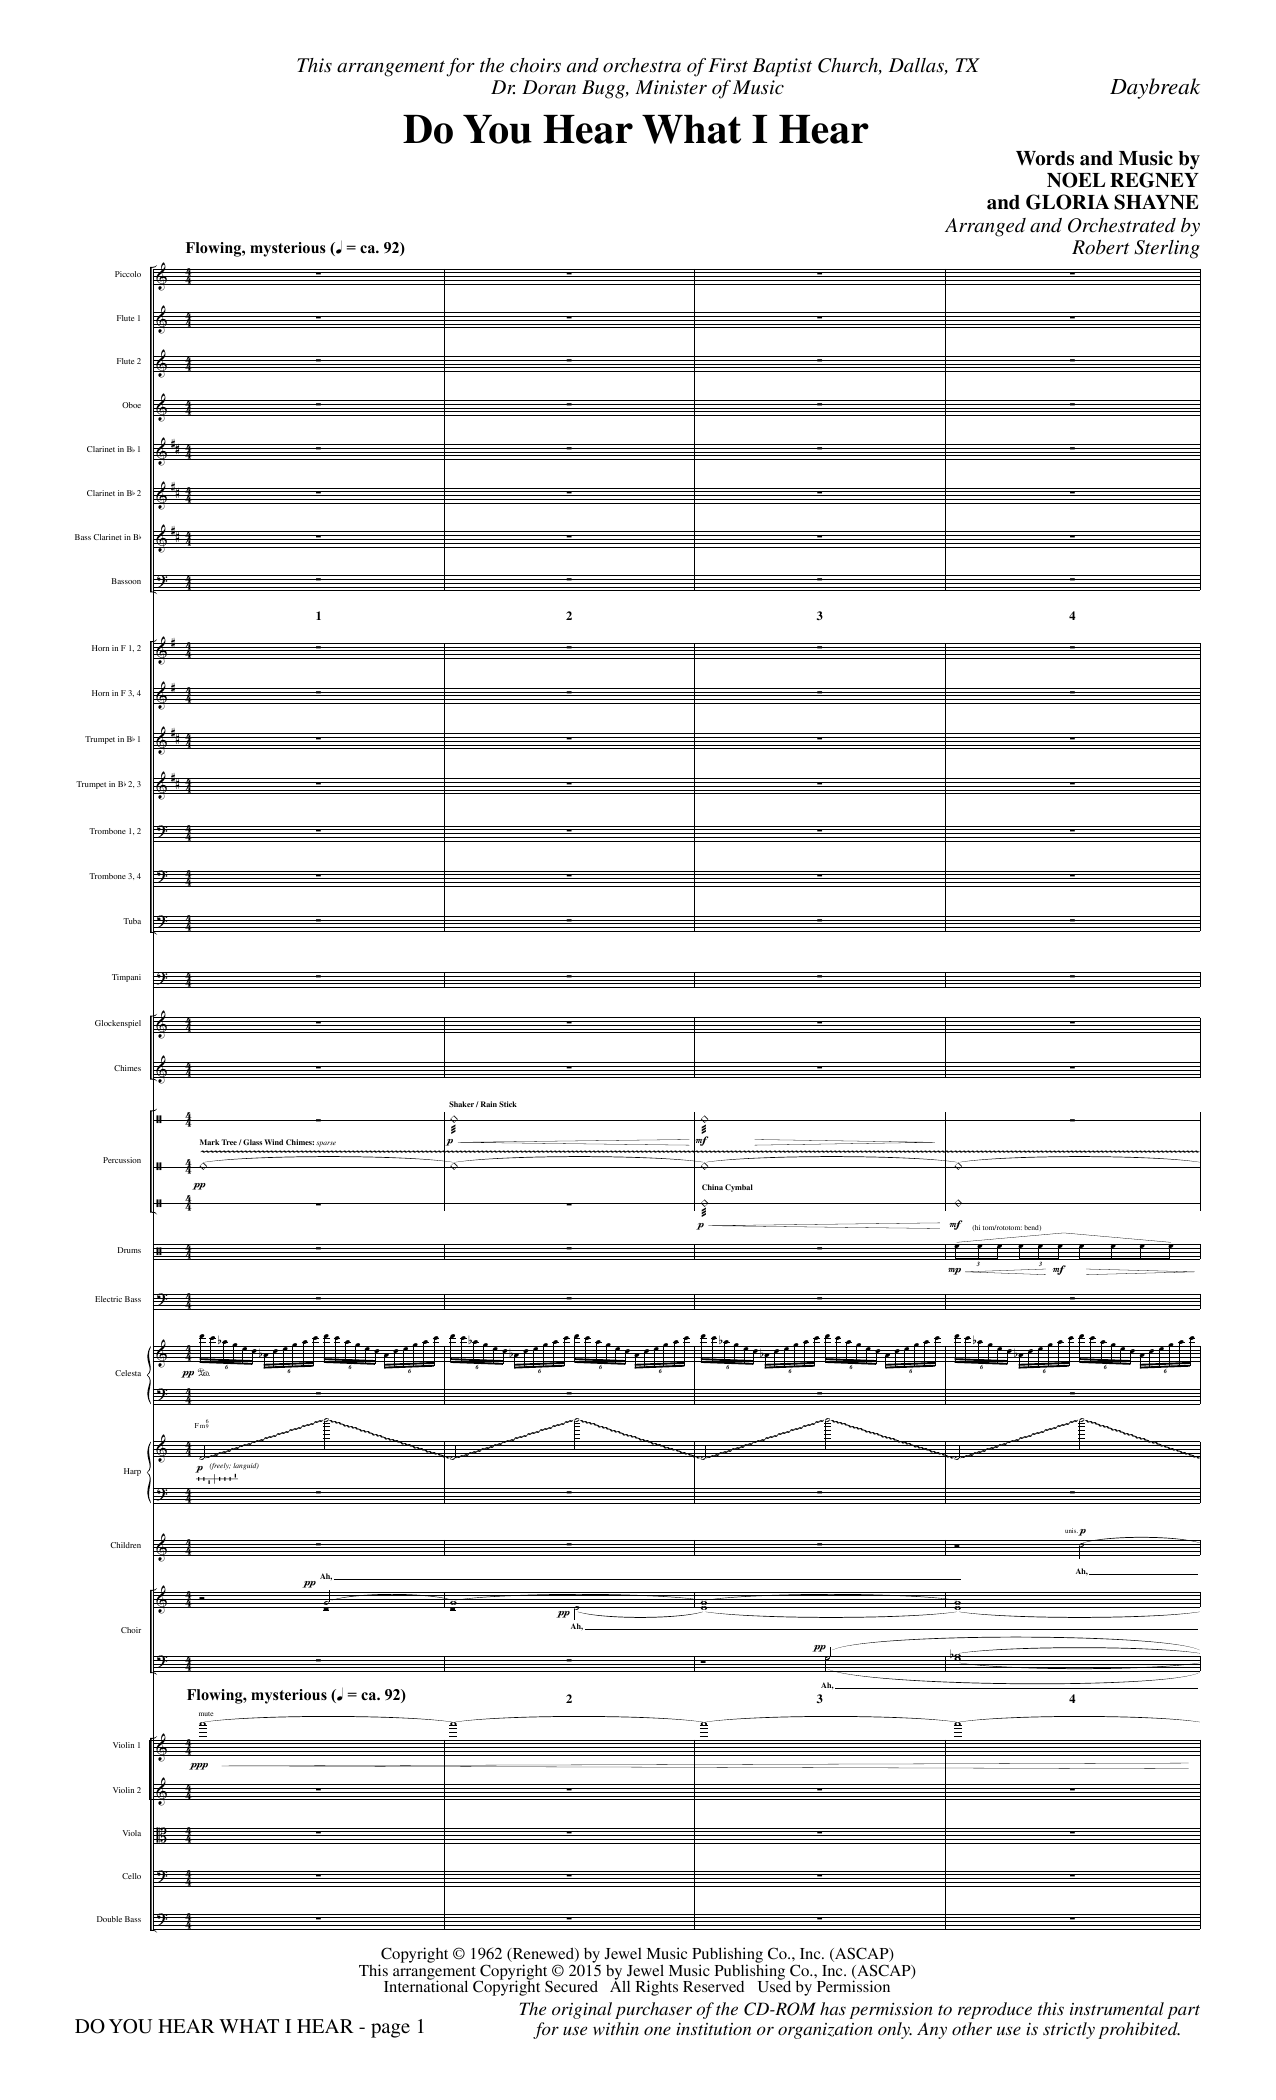 Robert Sterling Do You Hear What I Hear - Full Score sheet music notes and chords